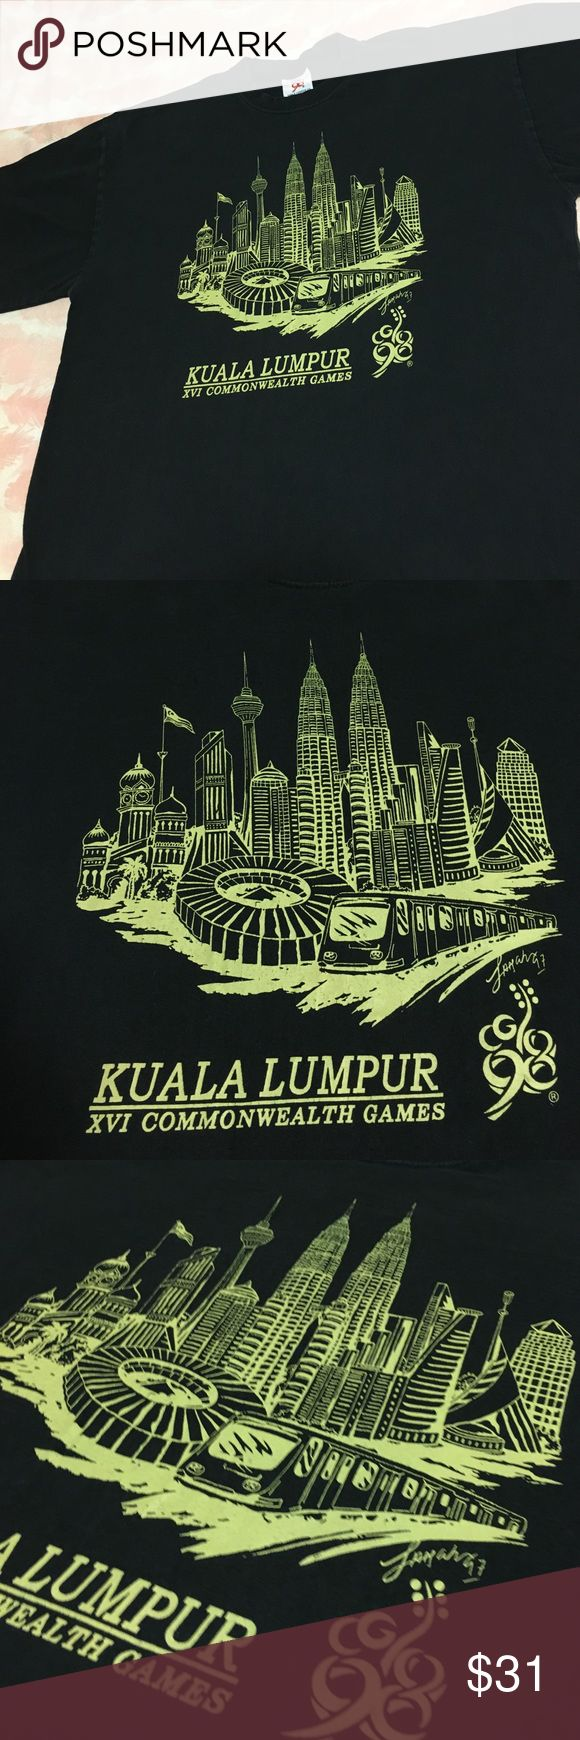 1998 Commonwealth Games😎Khala Lumpur Masterpiece Omgness , this baby is fire 🔥 Commonwealth Games 1998 with that awesome front logo . Light fade to this black beauty . XL & legit as it gets 😇 Vintage Tops Tees - Short Sleeve